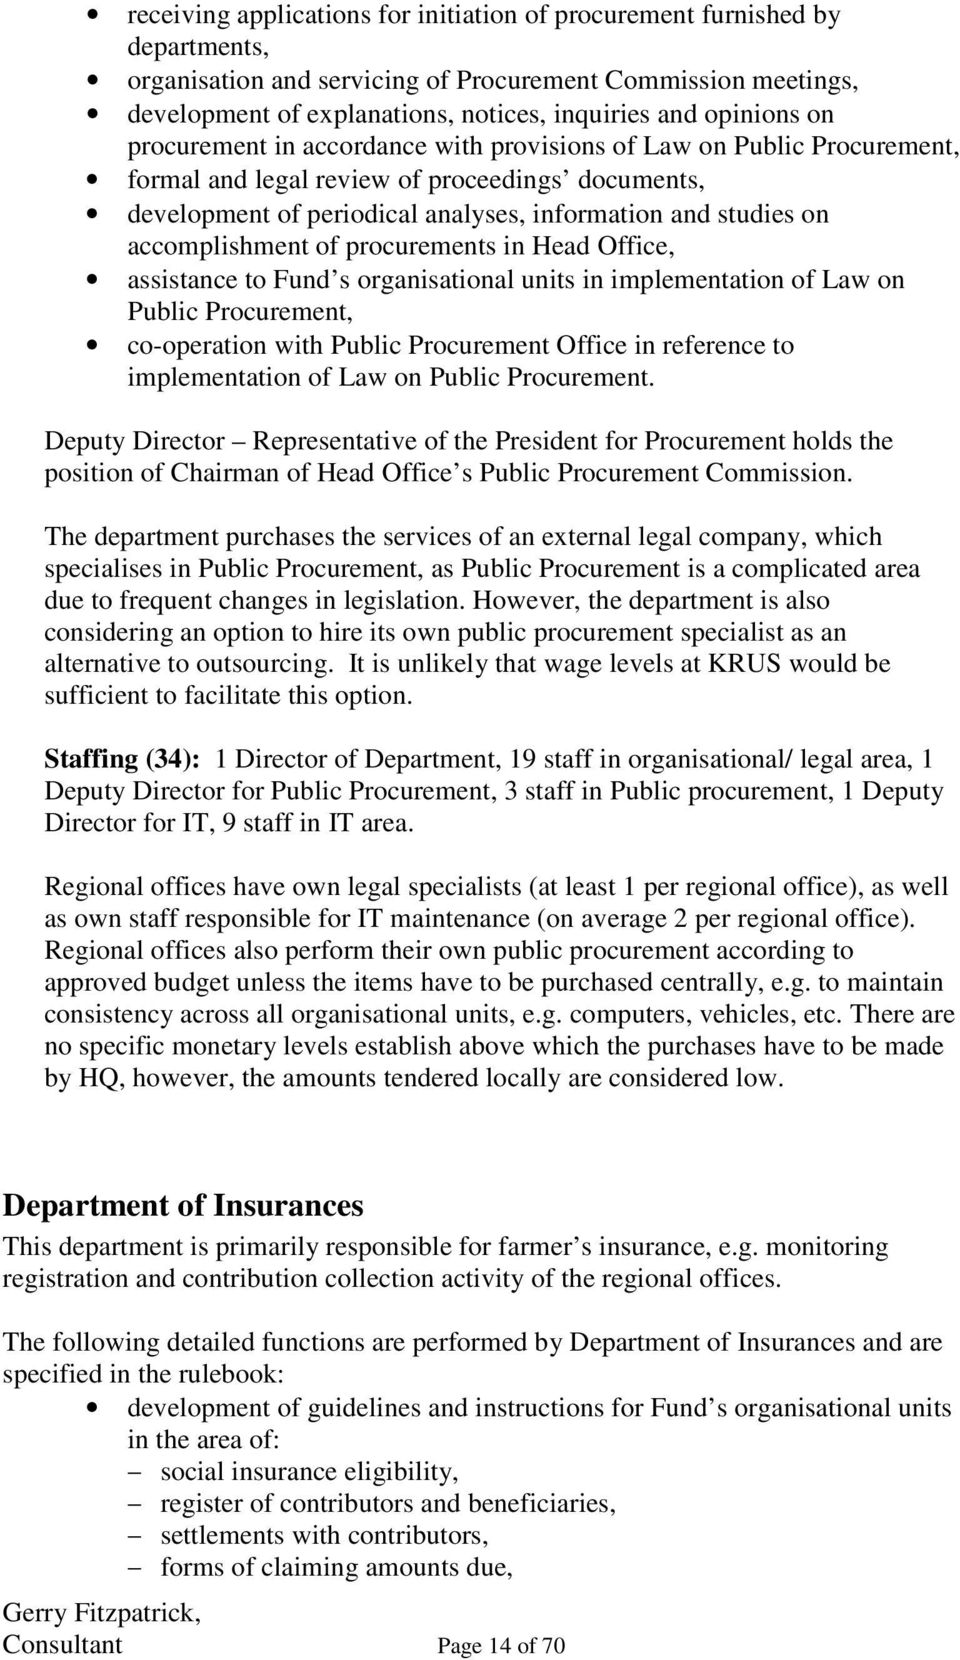 accomplishment of procurements in Head Office, assistance to Fund s organisational units in implementation of Law on Public Procurement, co-operation with Public Procurement Office in reference to